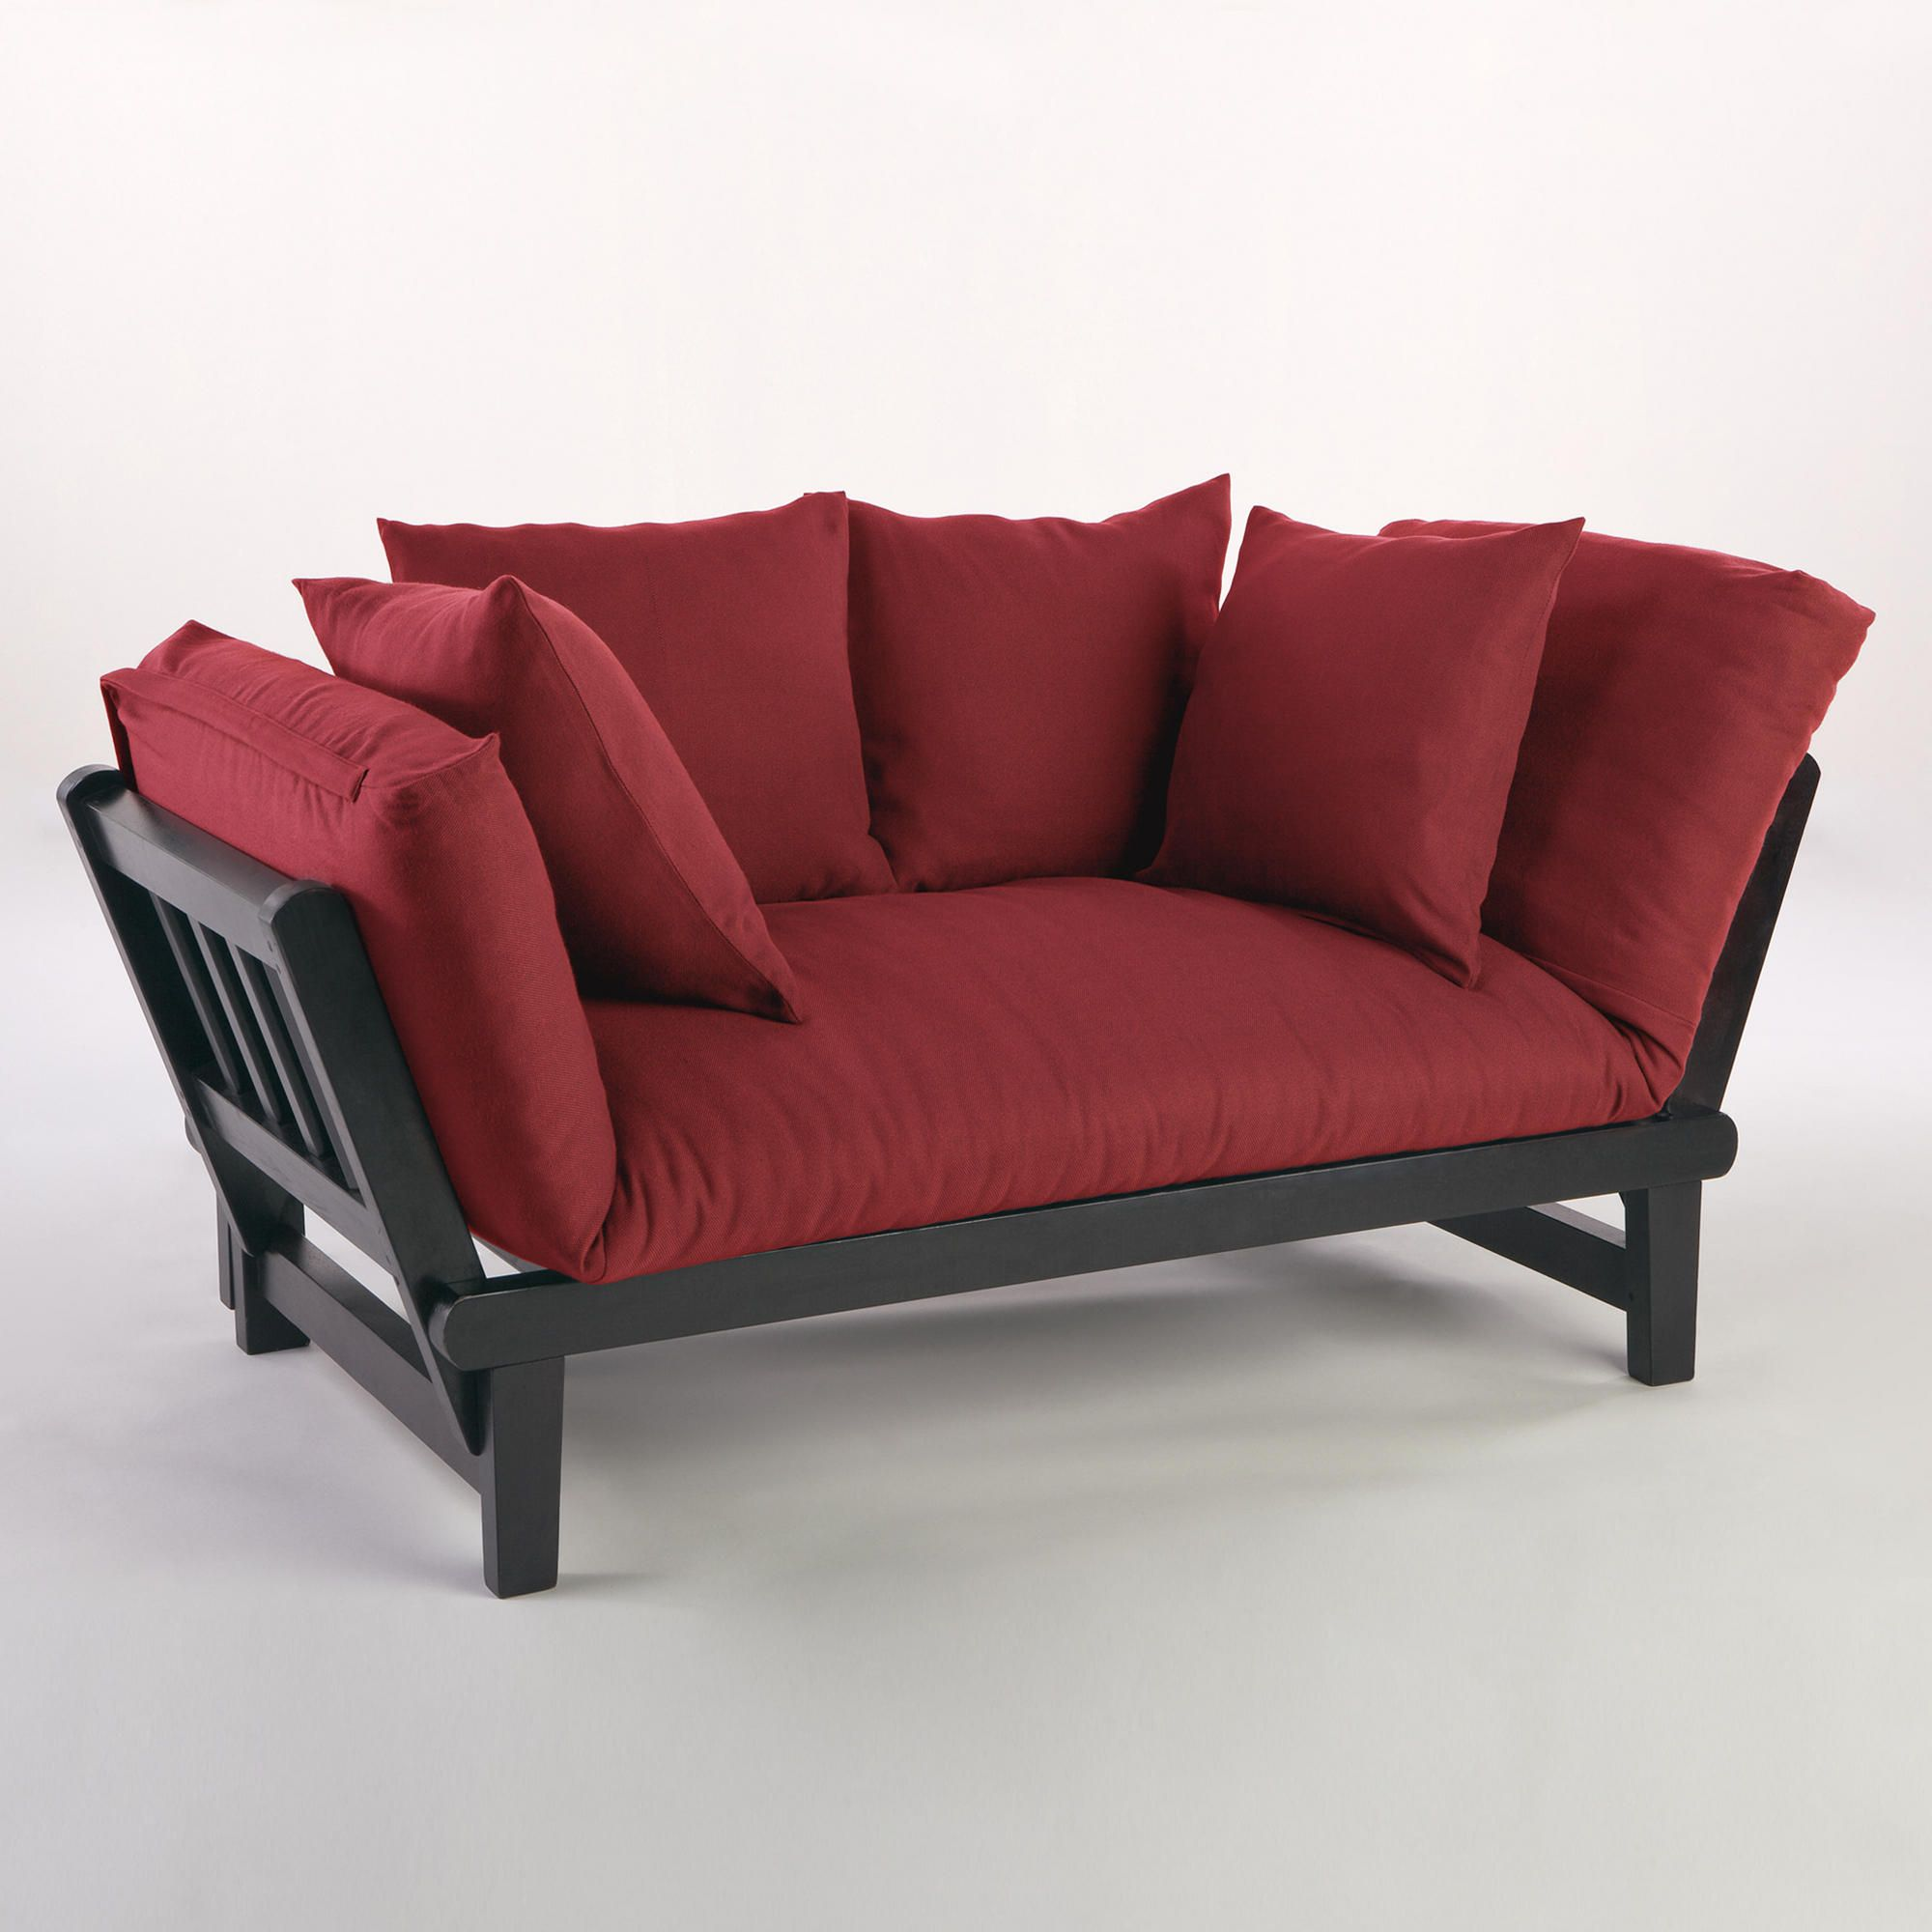 Genial Red Studio Day Sofa Slipcover